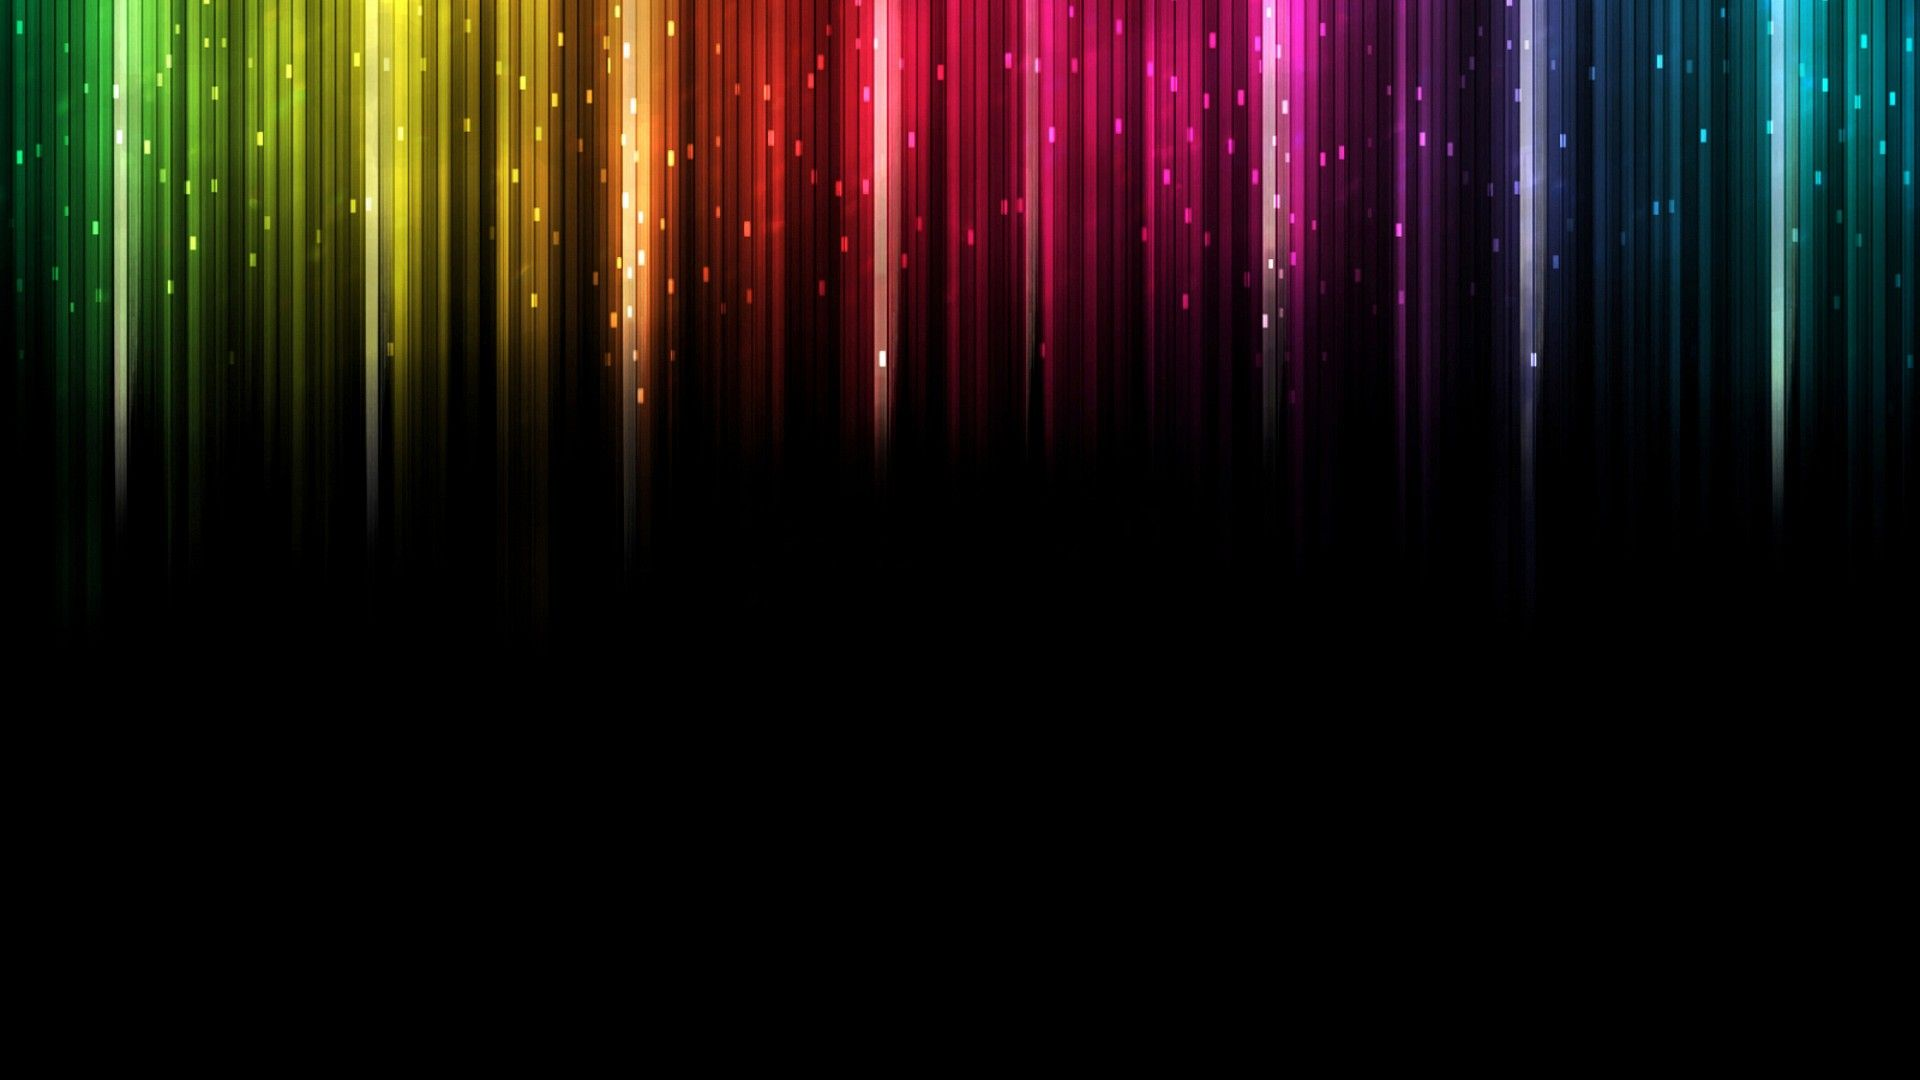 Abstract Hd Wallpaper 1920x1080 13 Jpg 1920 1080 Colorful